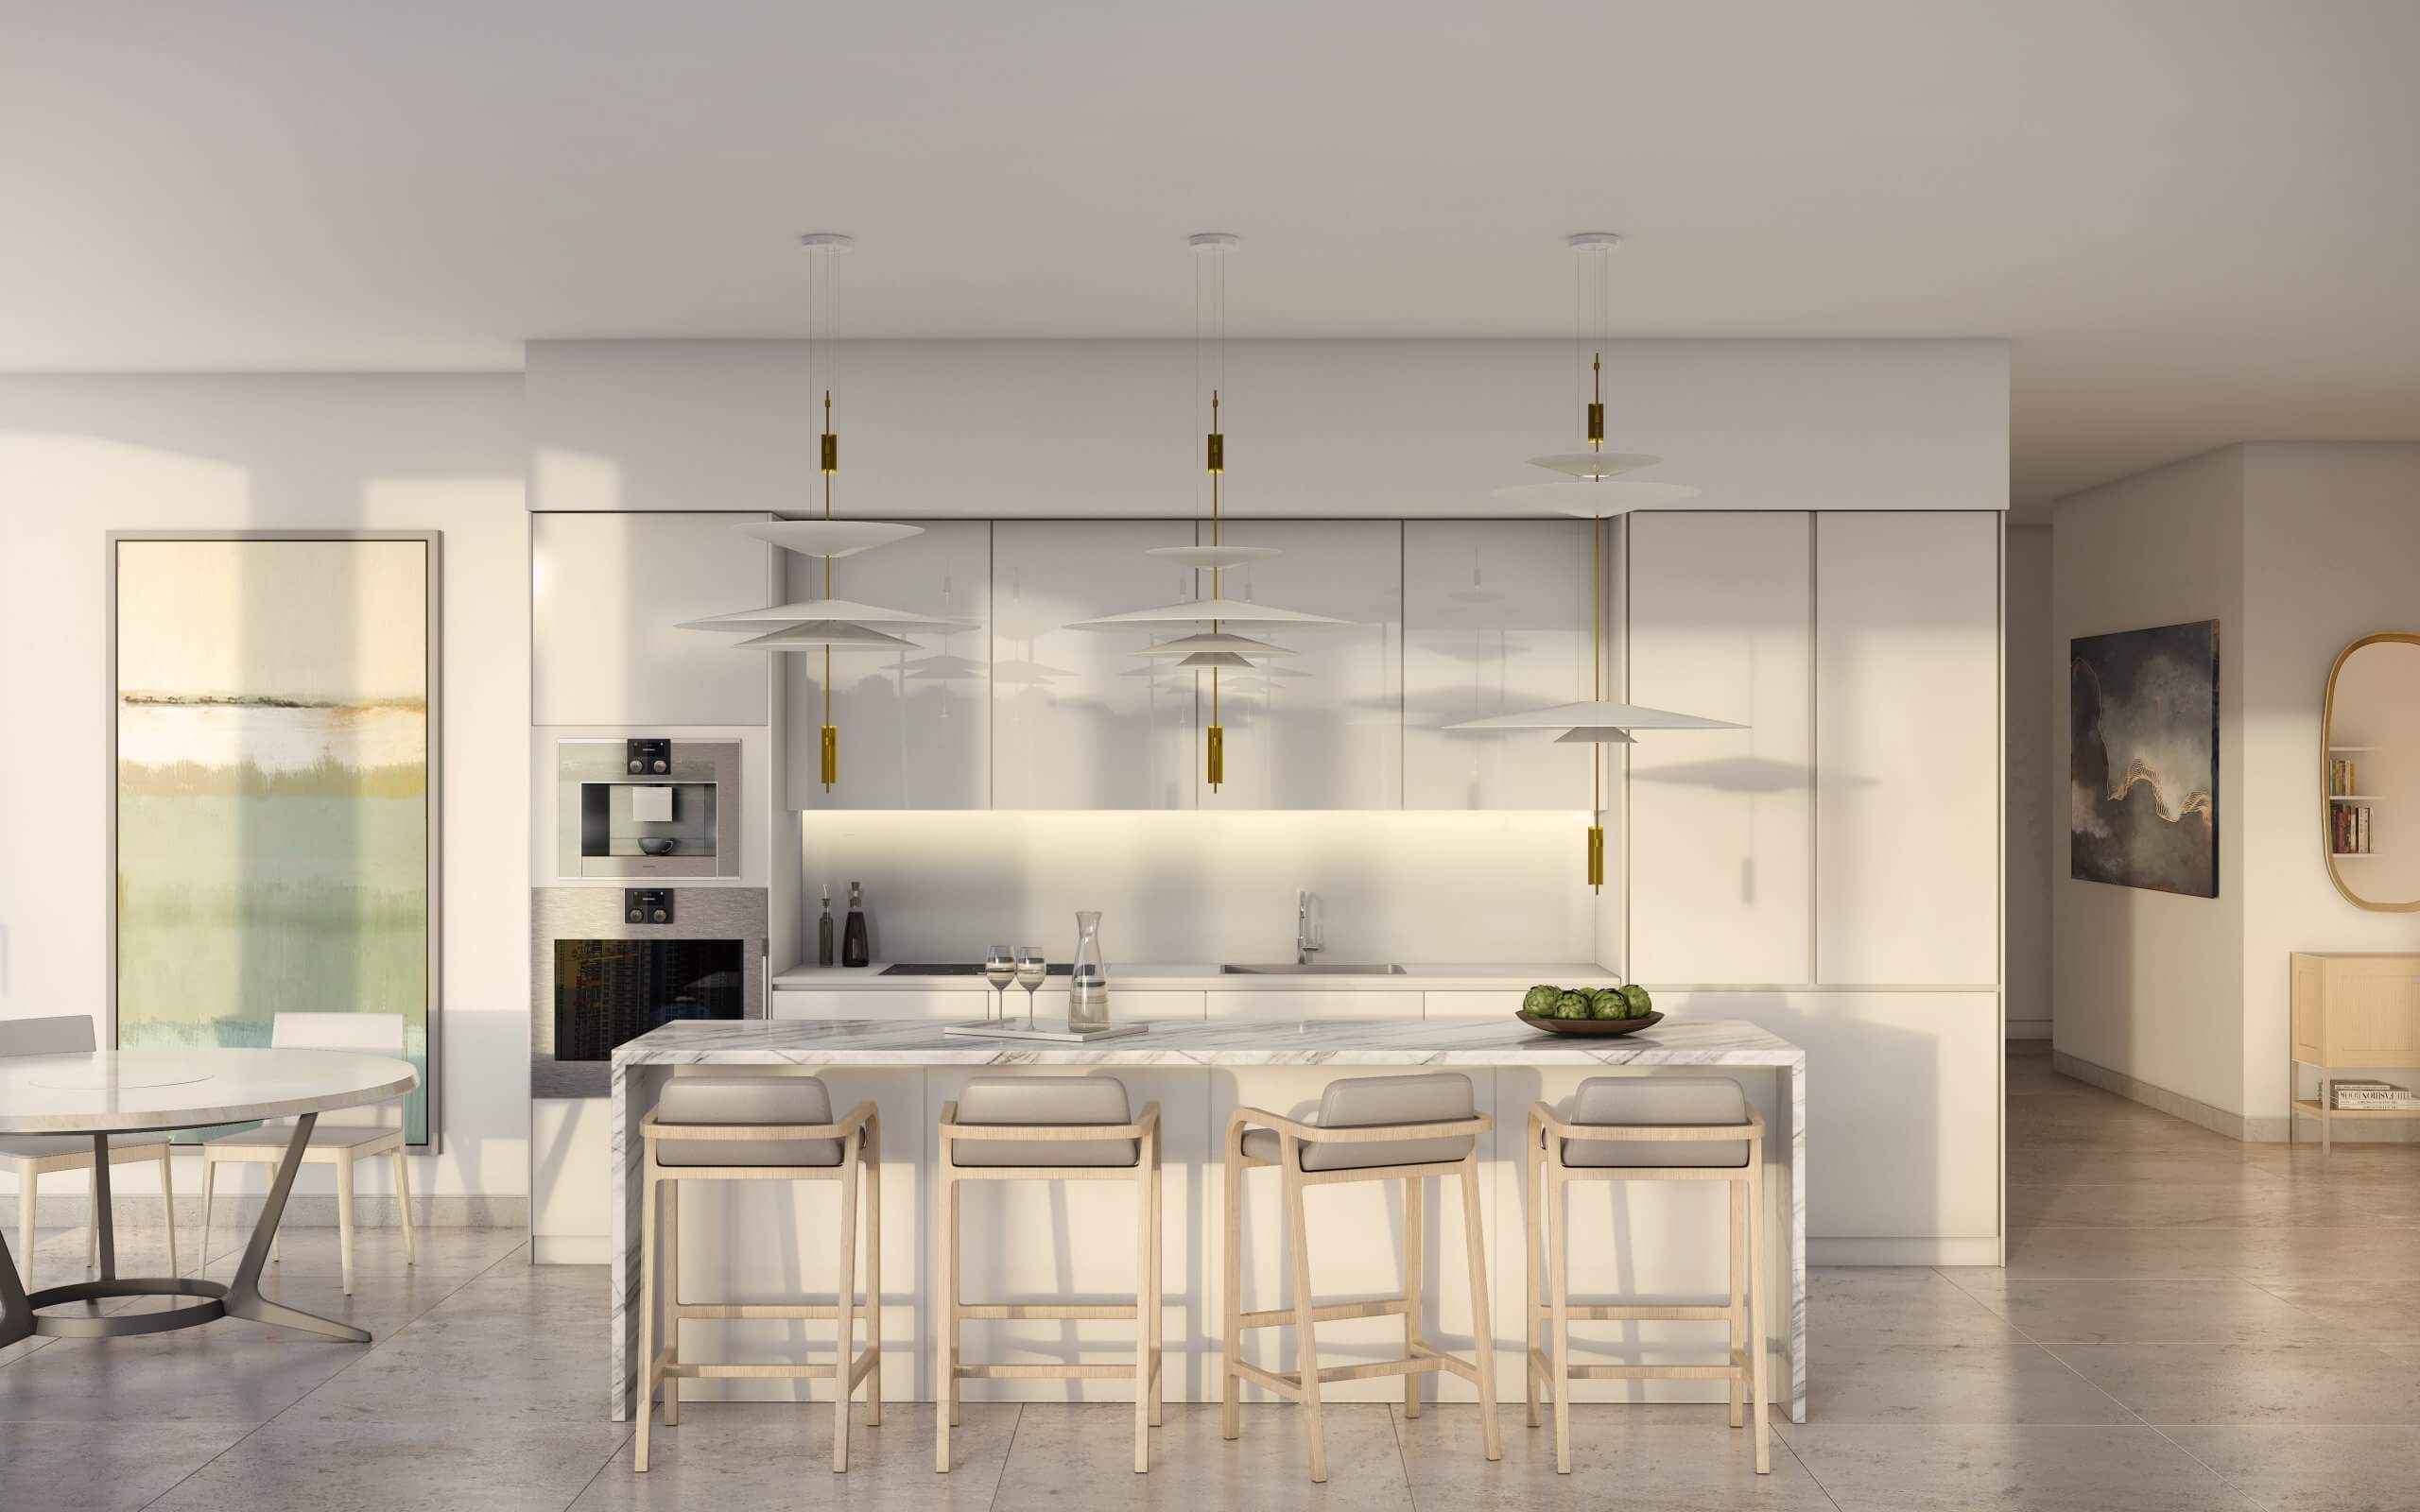 KM001-One-River-PointMiami-Kitchen_01